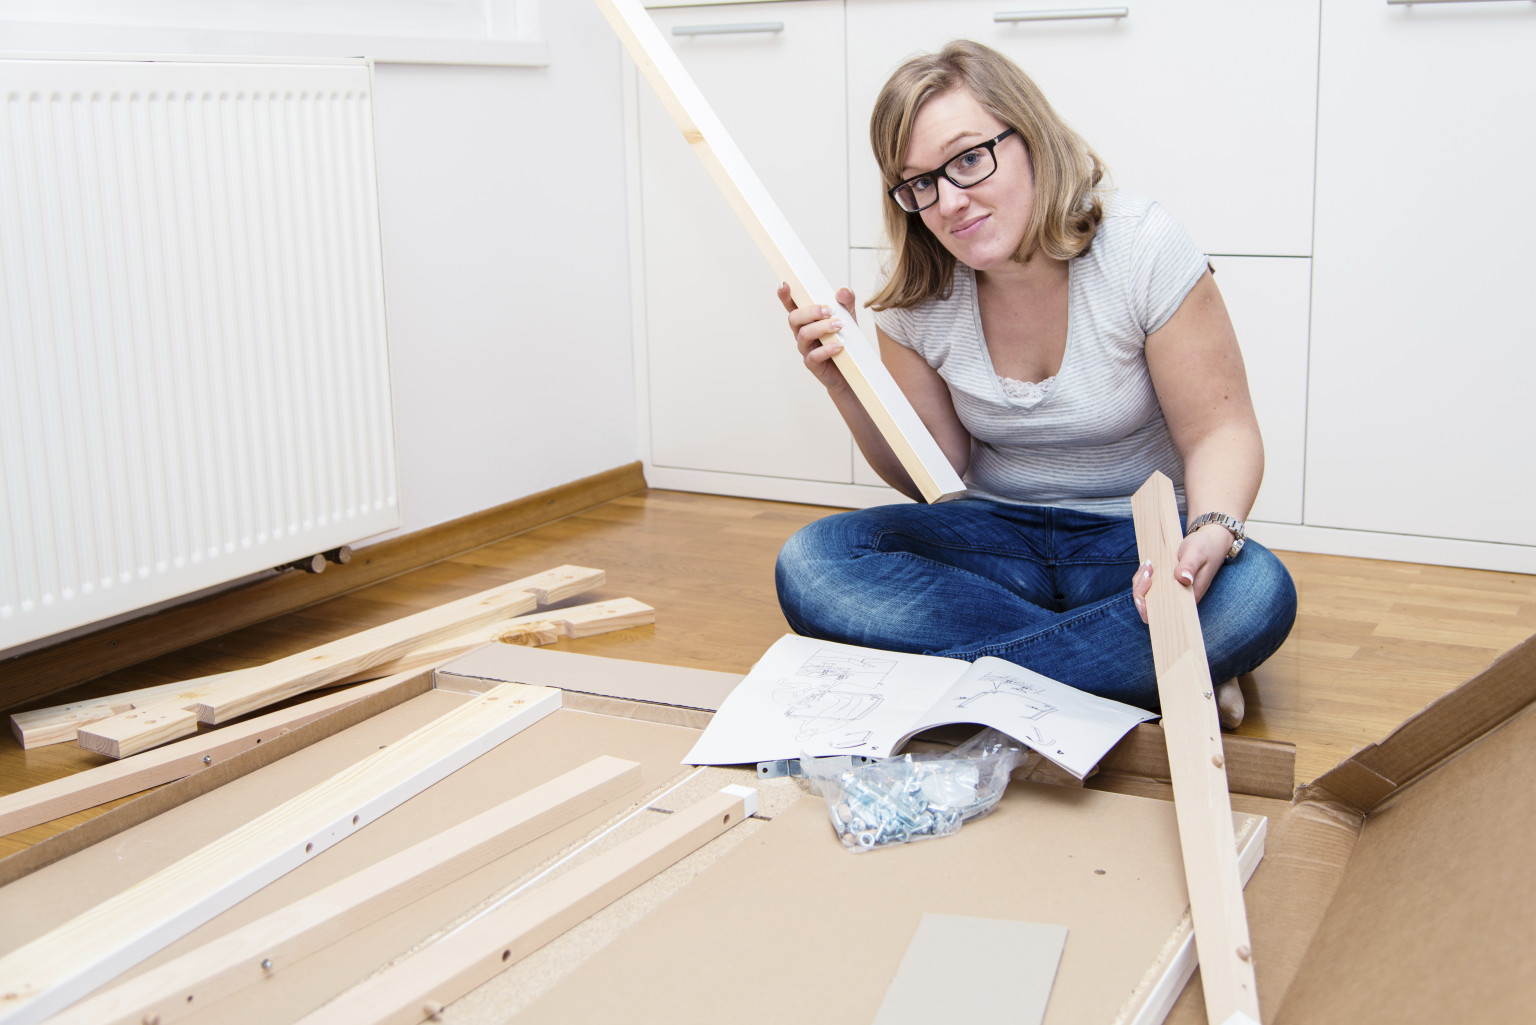 The 7 emotional stages of ikea furniture assembly huffpost for Ikea flat pack garden